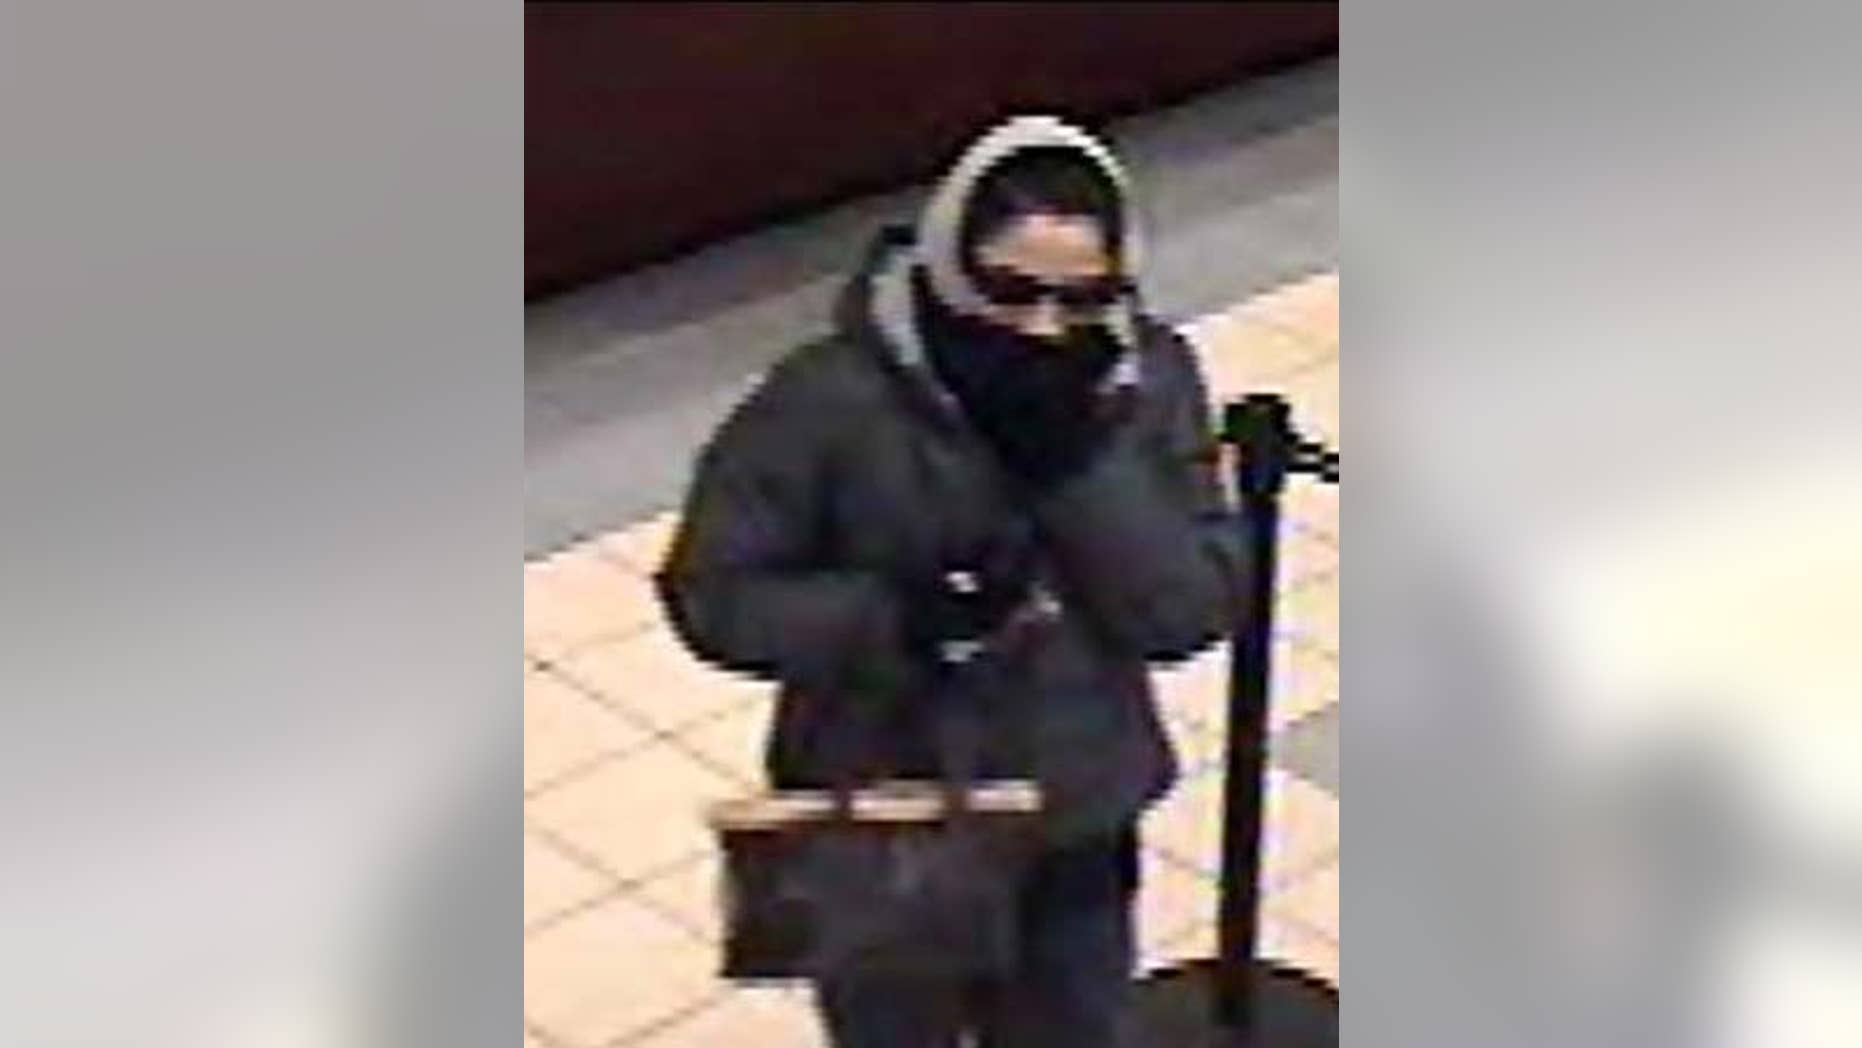 This police handout photo shows a woman police say robbed at least three banks in Long Island.